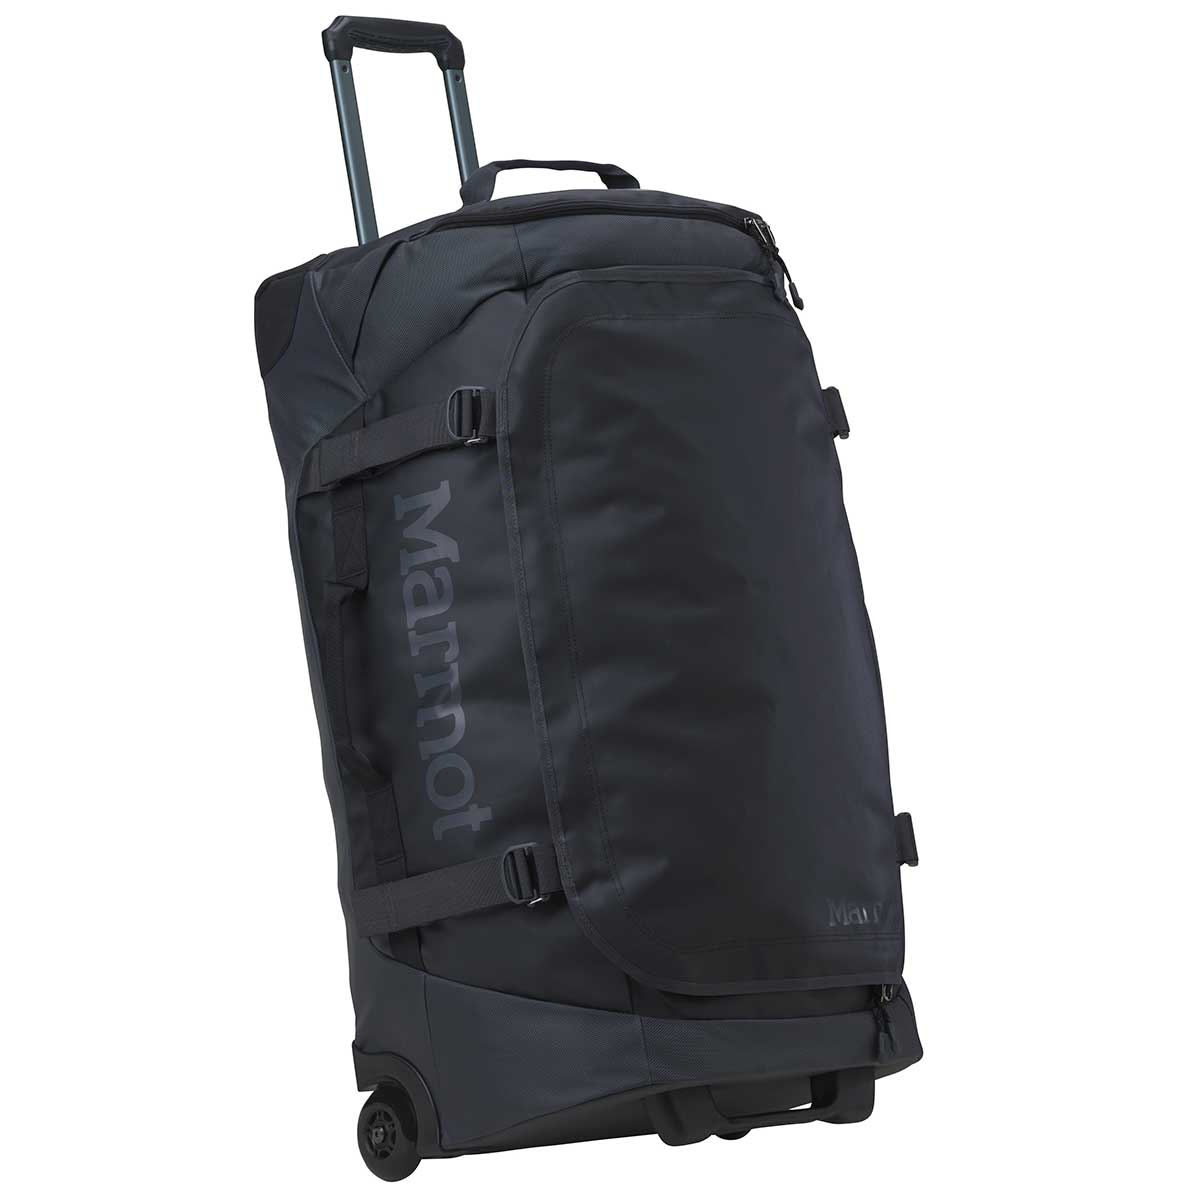 Marmot Rolling Hauler - Large in Slate Grey and Black